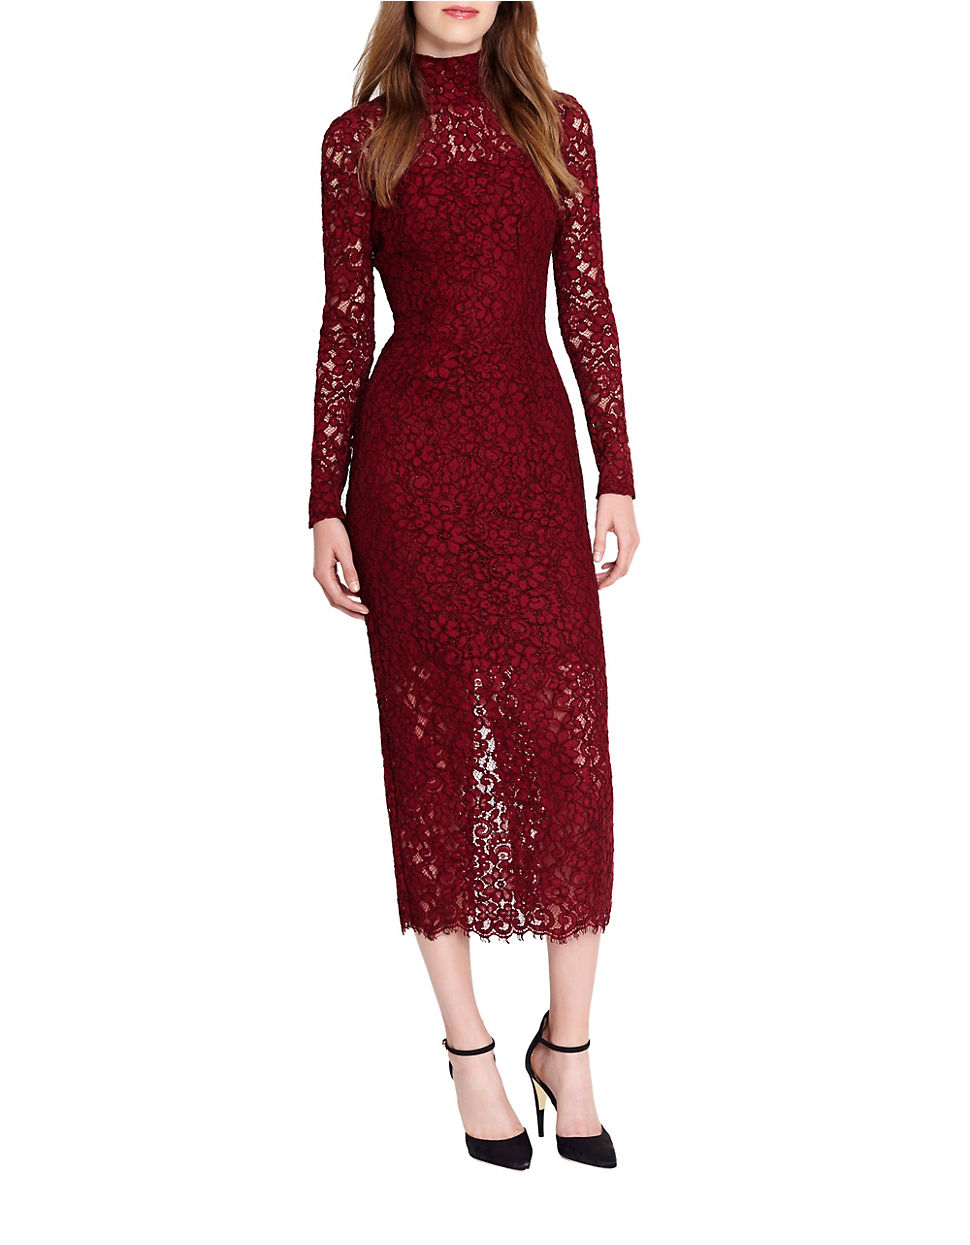 Lyst - Ml monique lhuillier Lace Midi Dress in Purple